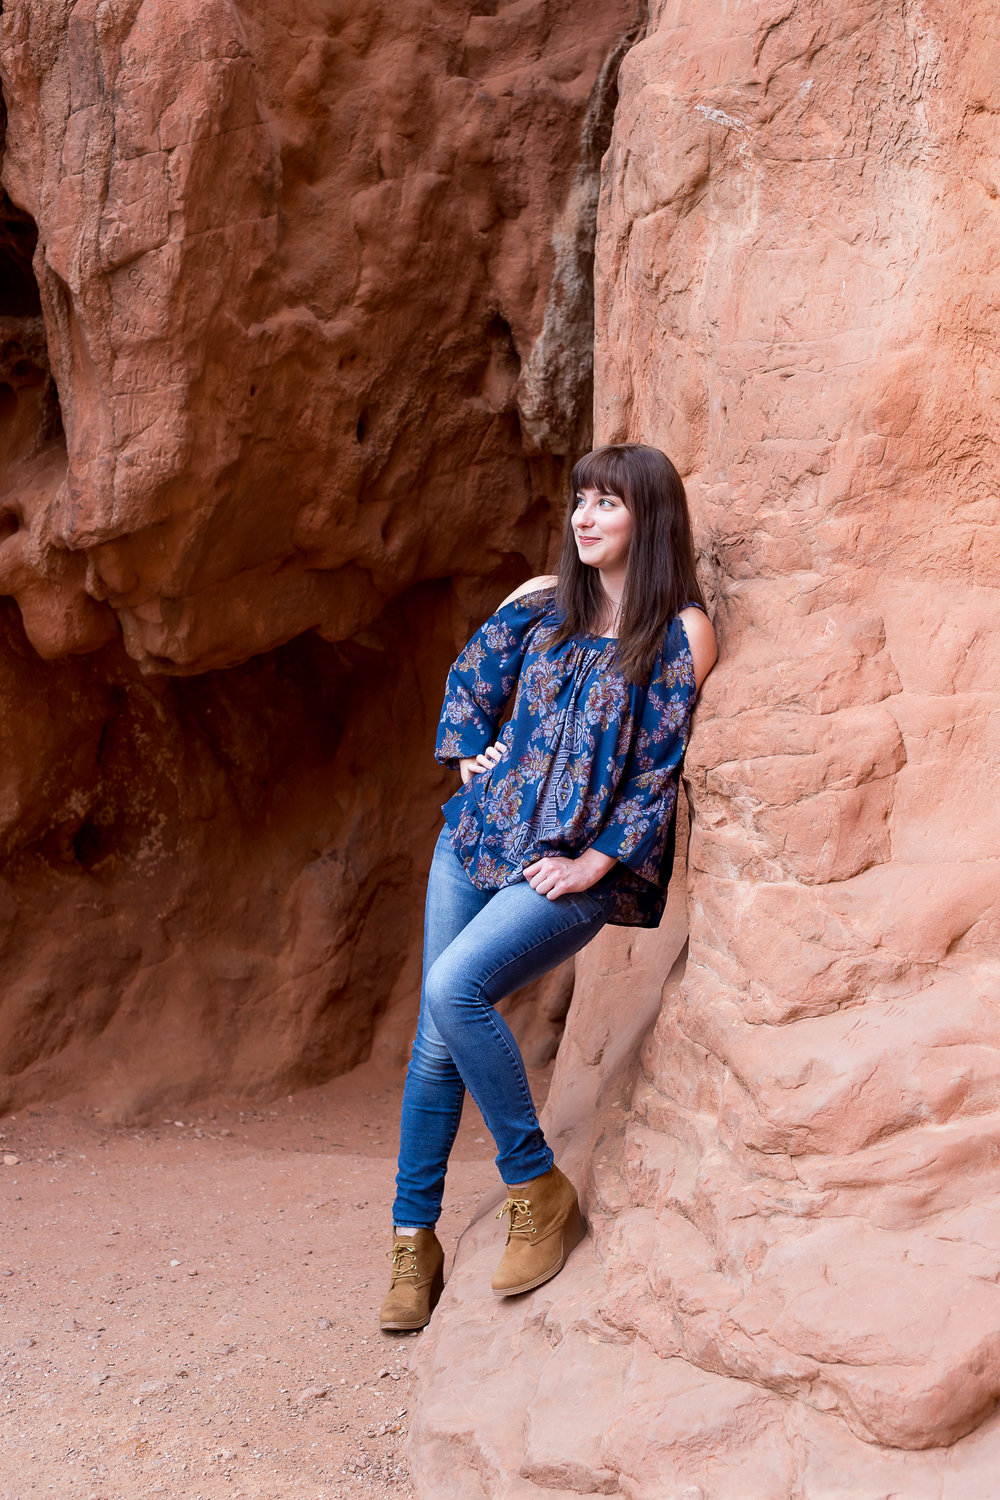 Colorado Springs Senior Portraits | Colorado Springs Garden of the Gods Senior Photography | Stacy Carosa Photography